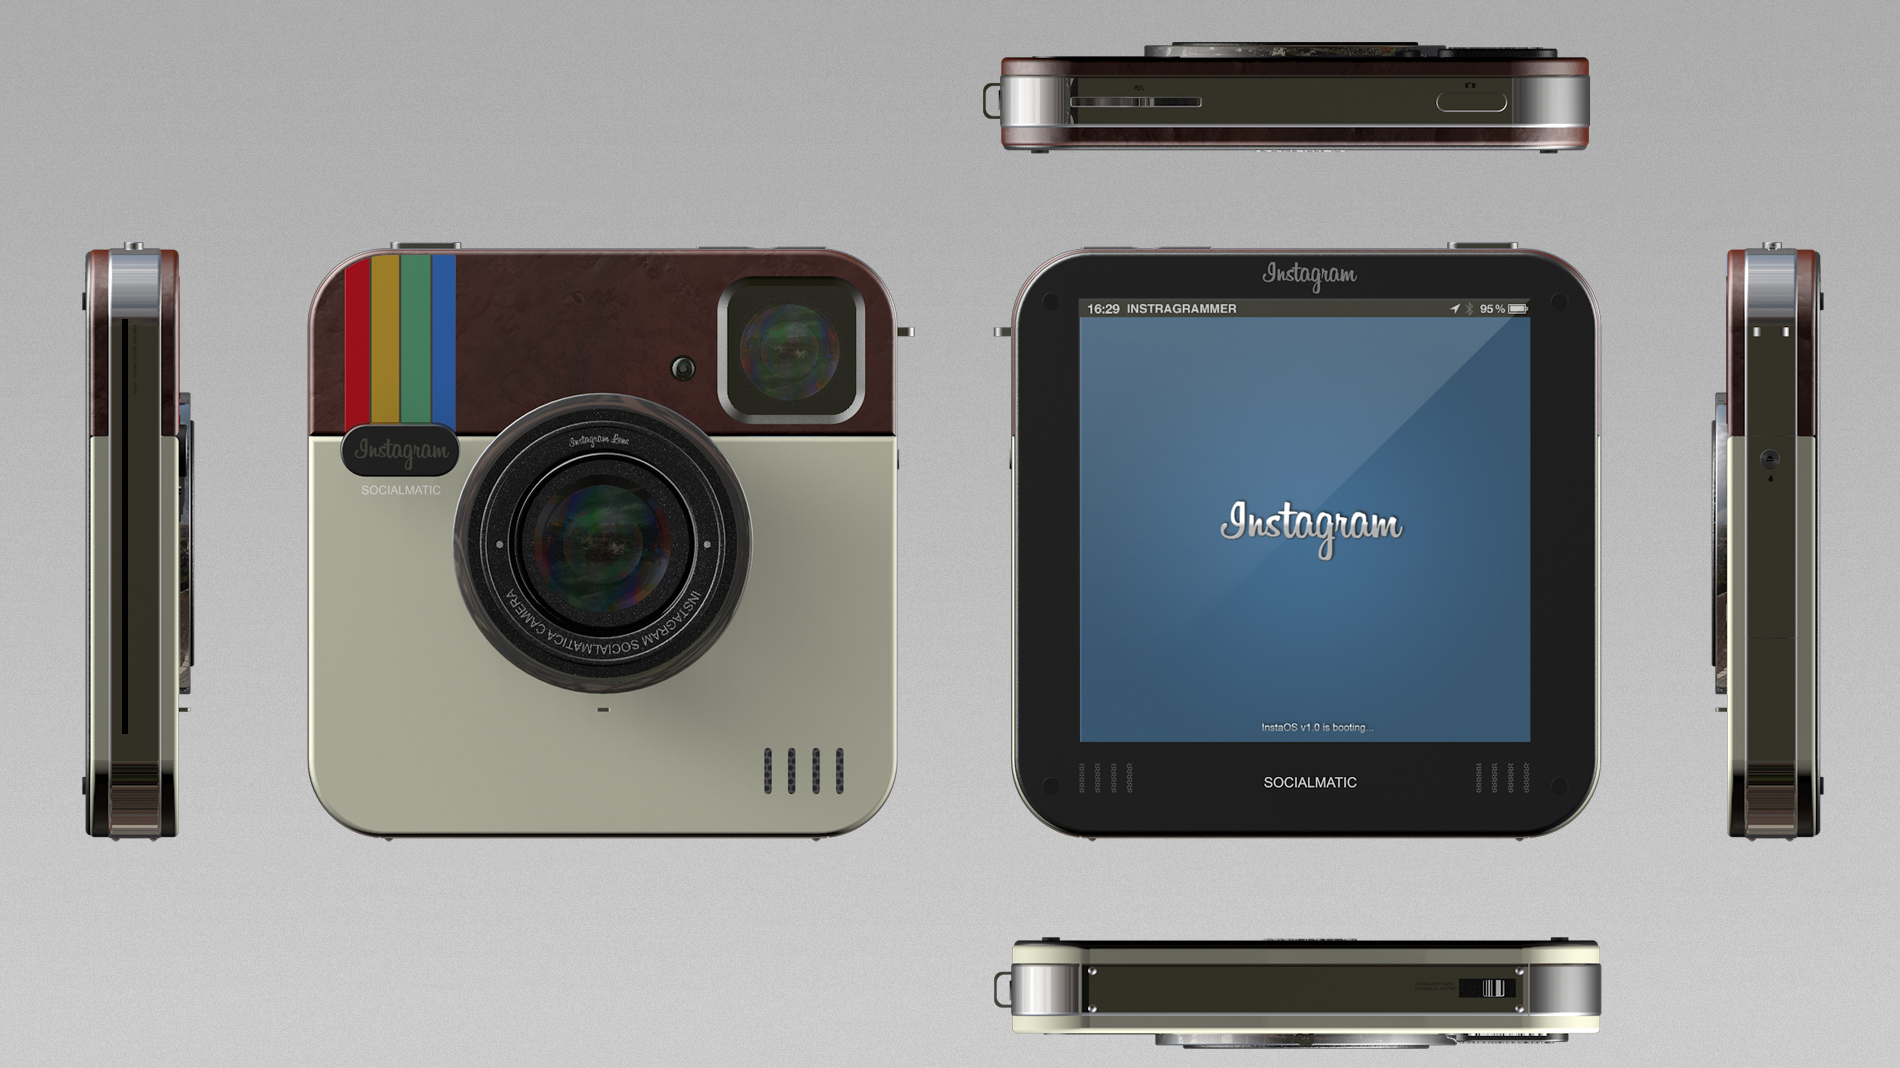 Would You Buy This Facebook Instagram Concept Camera If It Were Real?